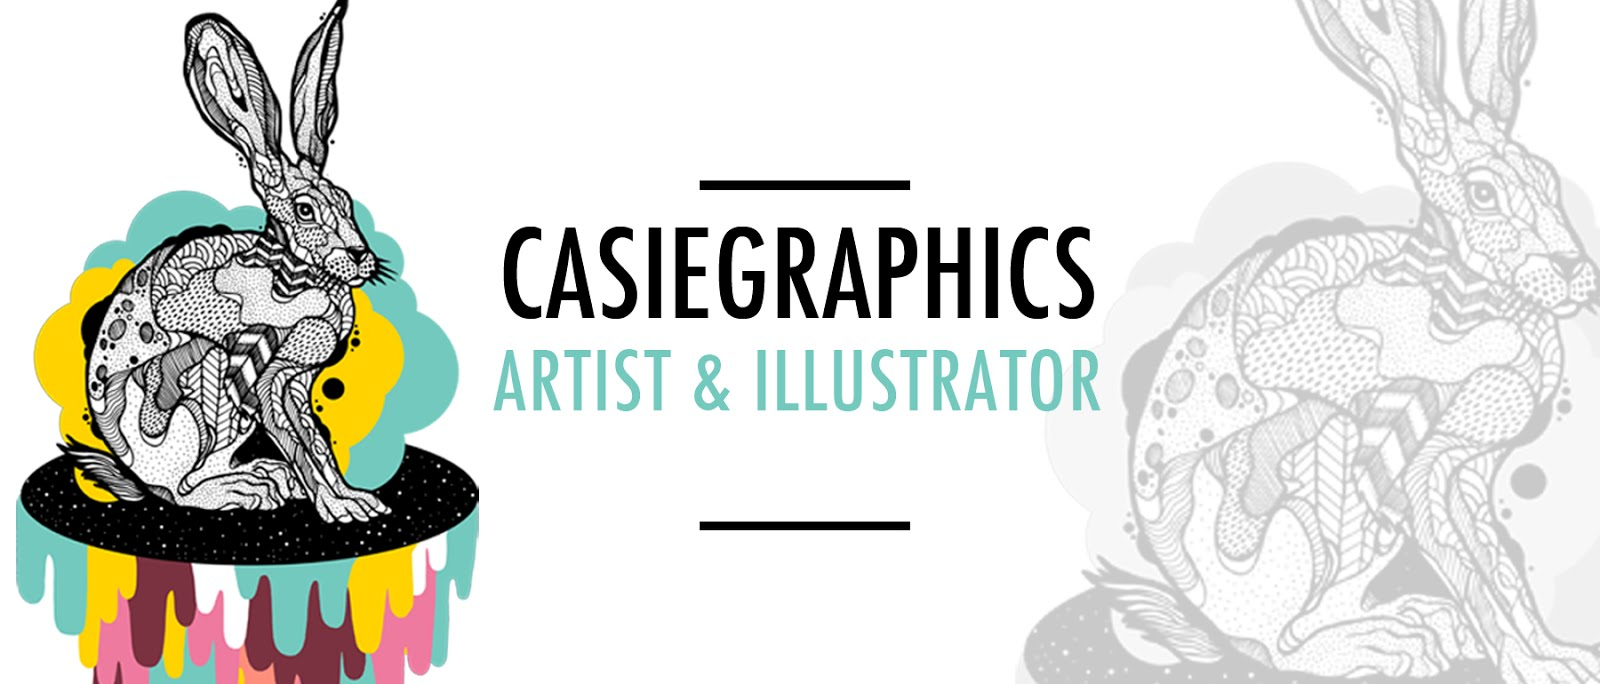 CASIEGRAPHICS